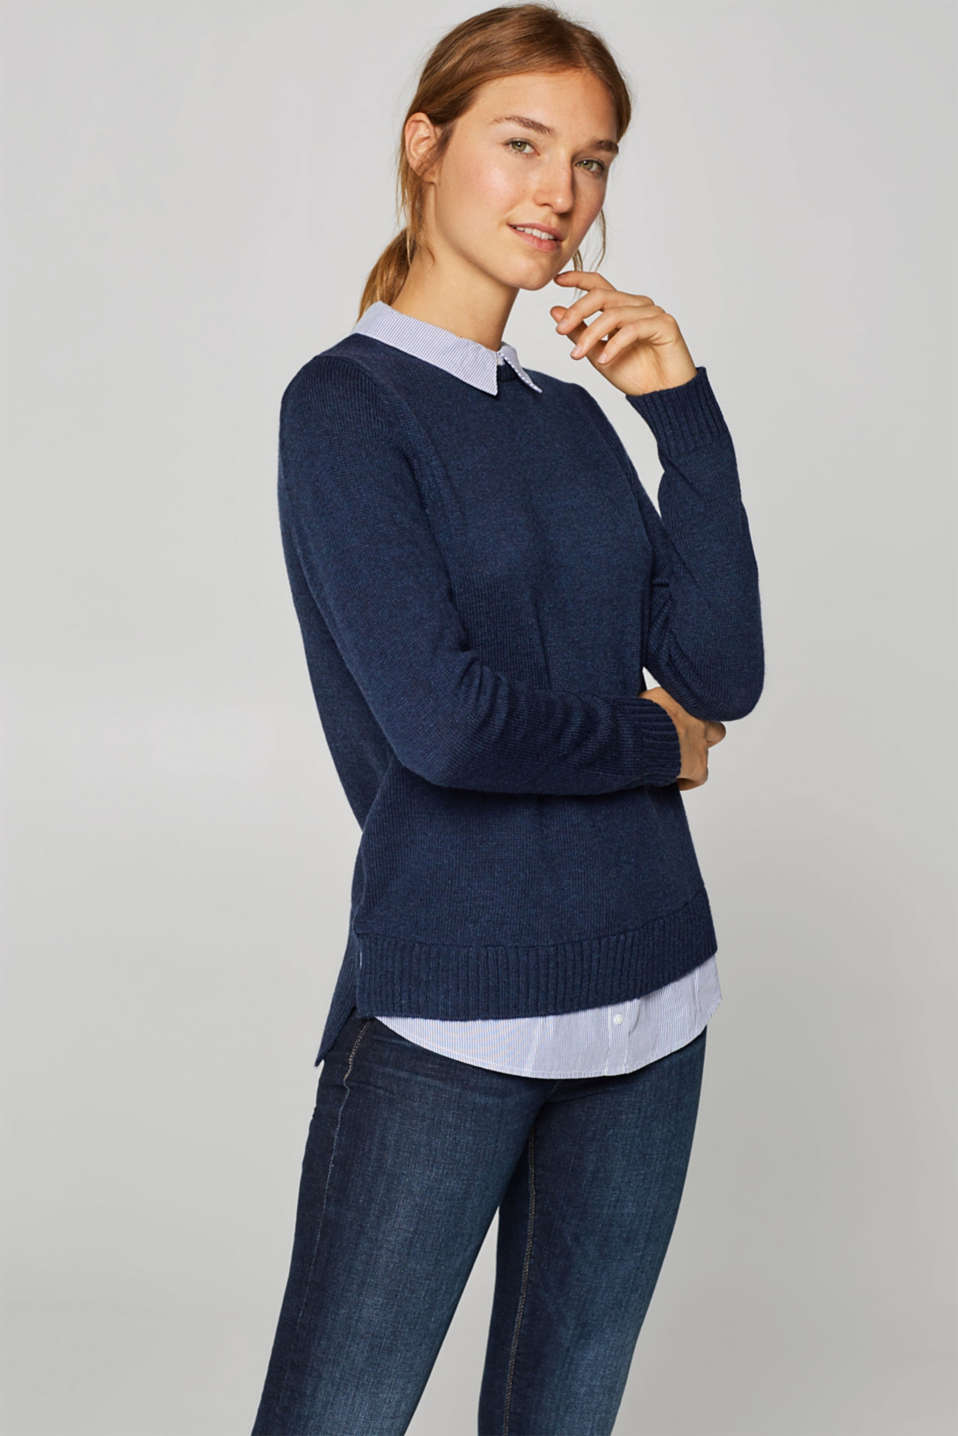 Esprit - Jumper in a layered style, with wool